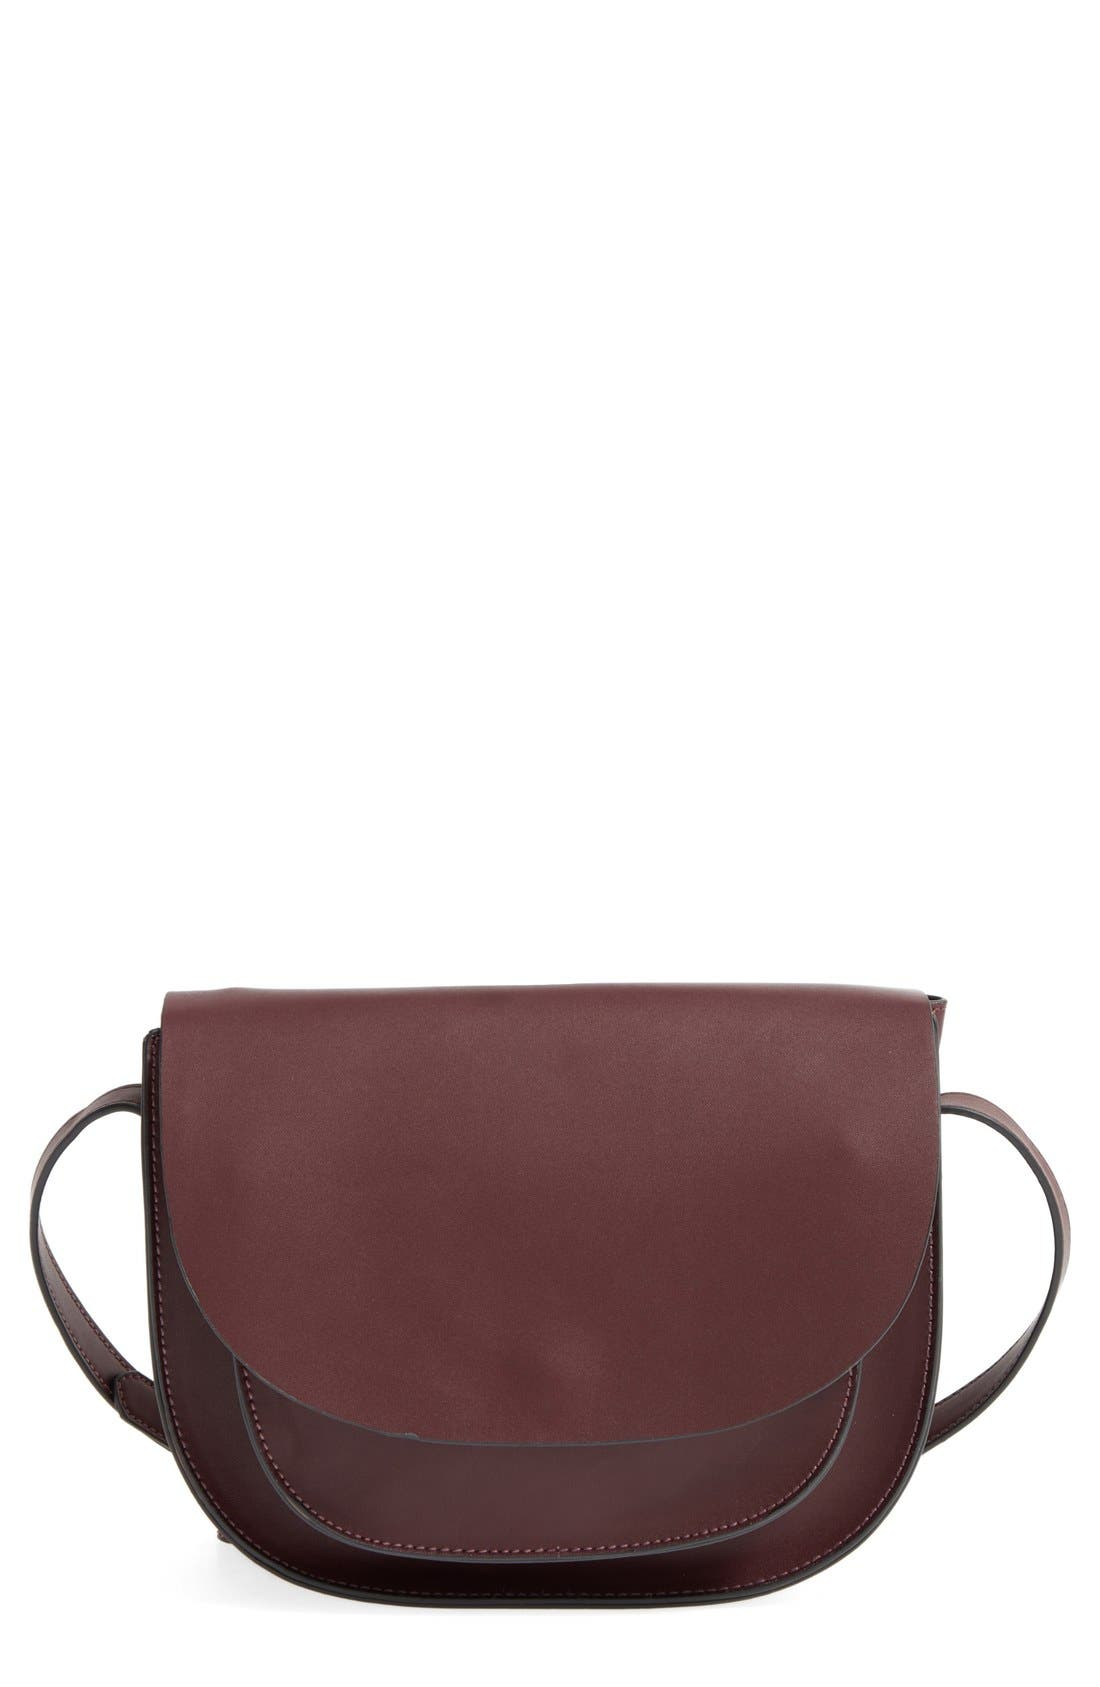 Alternate Image 1 Selected - Sole Society Claire Faux Leather Crossbody Bag